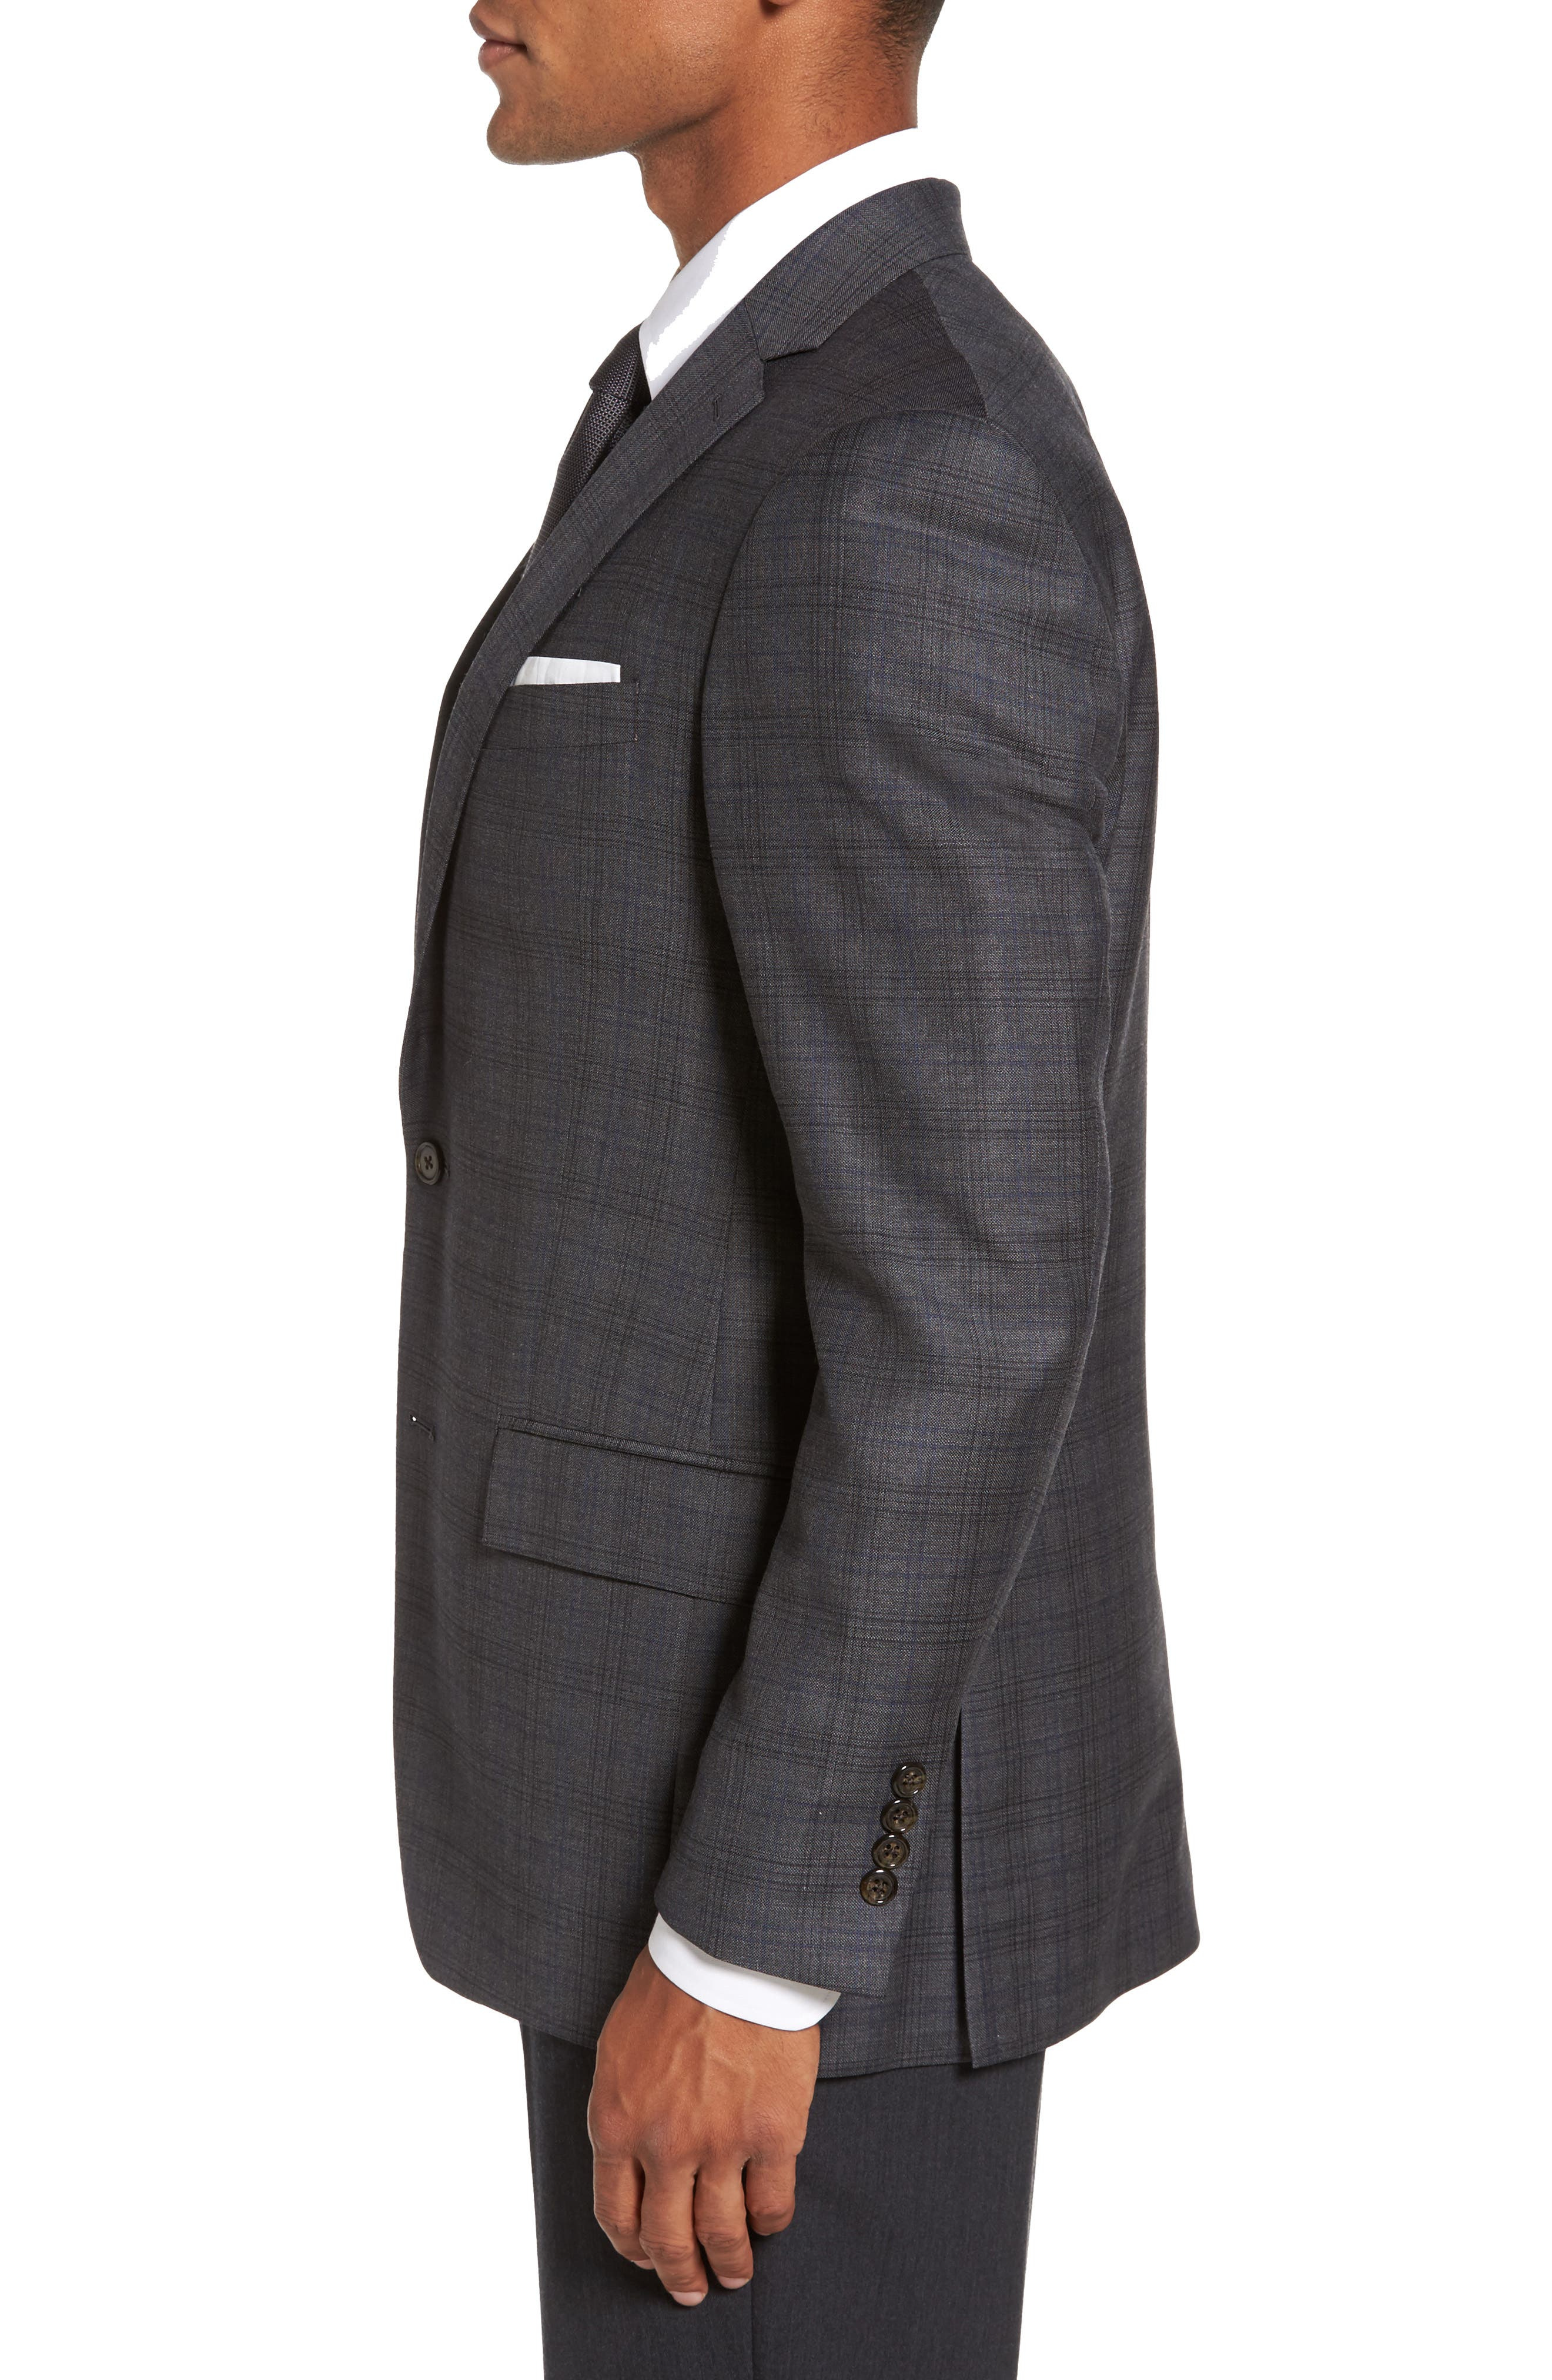 Alternate Image 3  - Todd Snyder White Label Sutton Trim Fit Plaid Wool Sport Coat